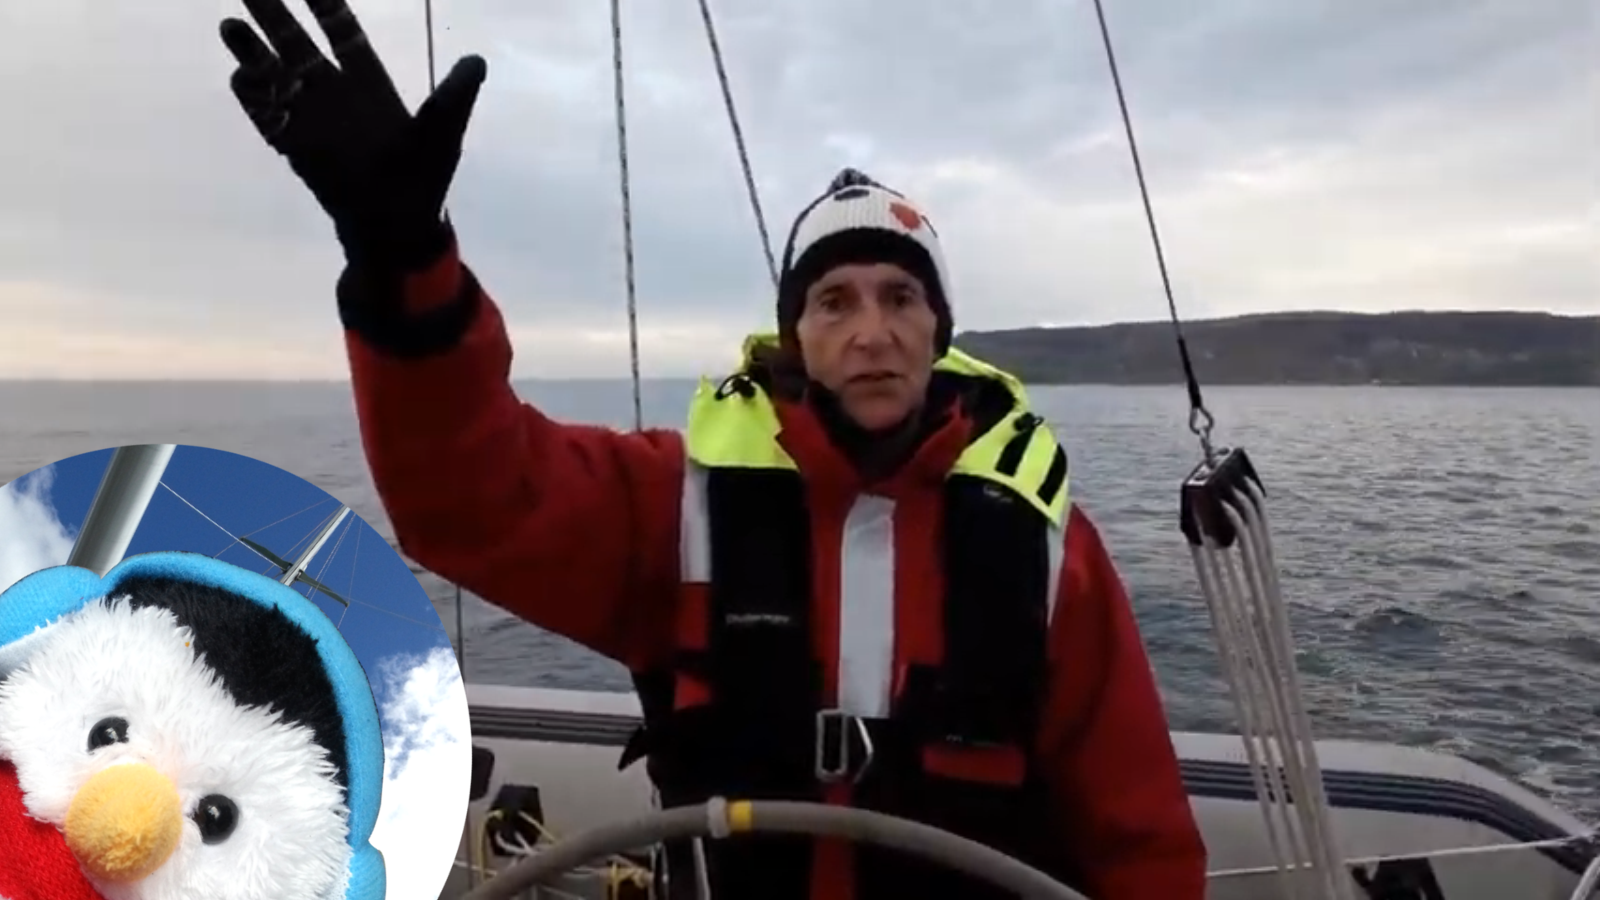 Watch our 'Sailing from Carrickfergus' video and add comment etc.